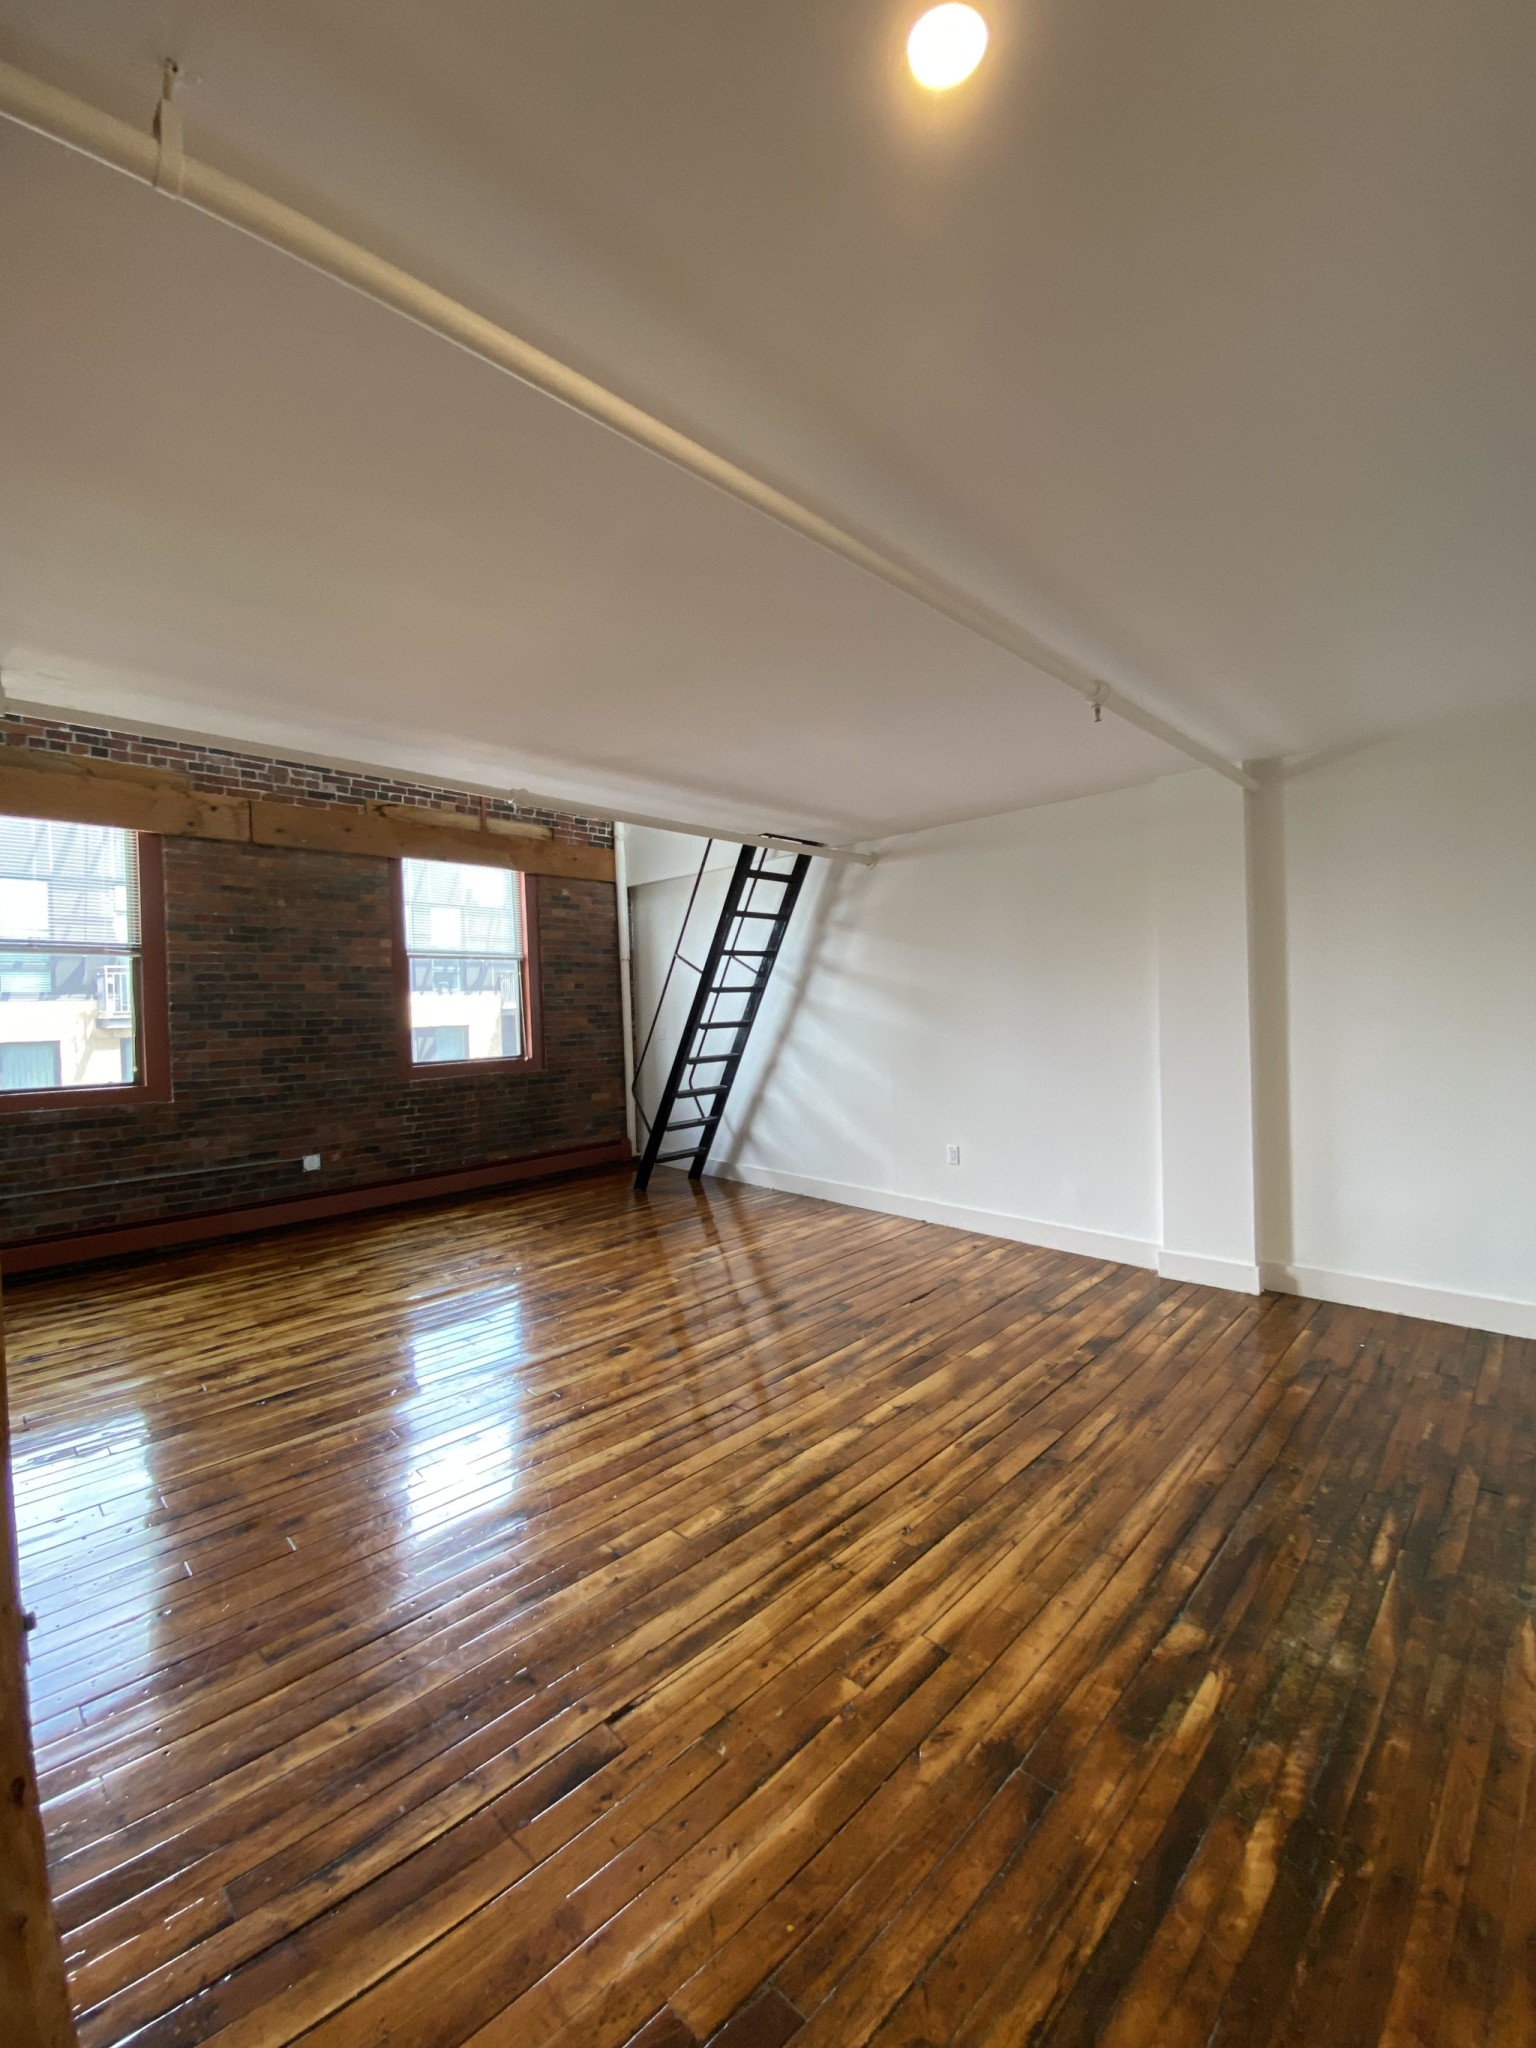 2 Beds, 1 Bath apartment in Boston, South End for $3,800